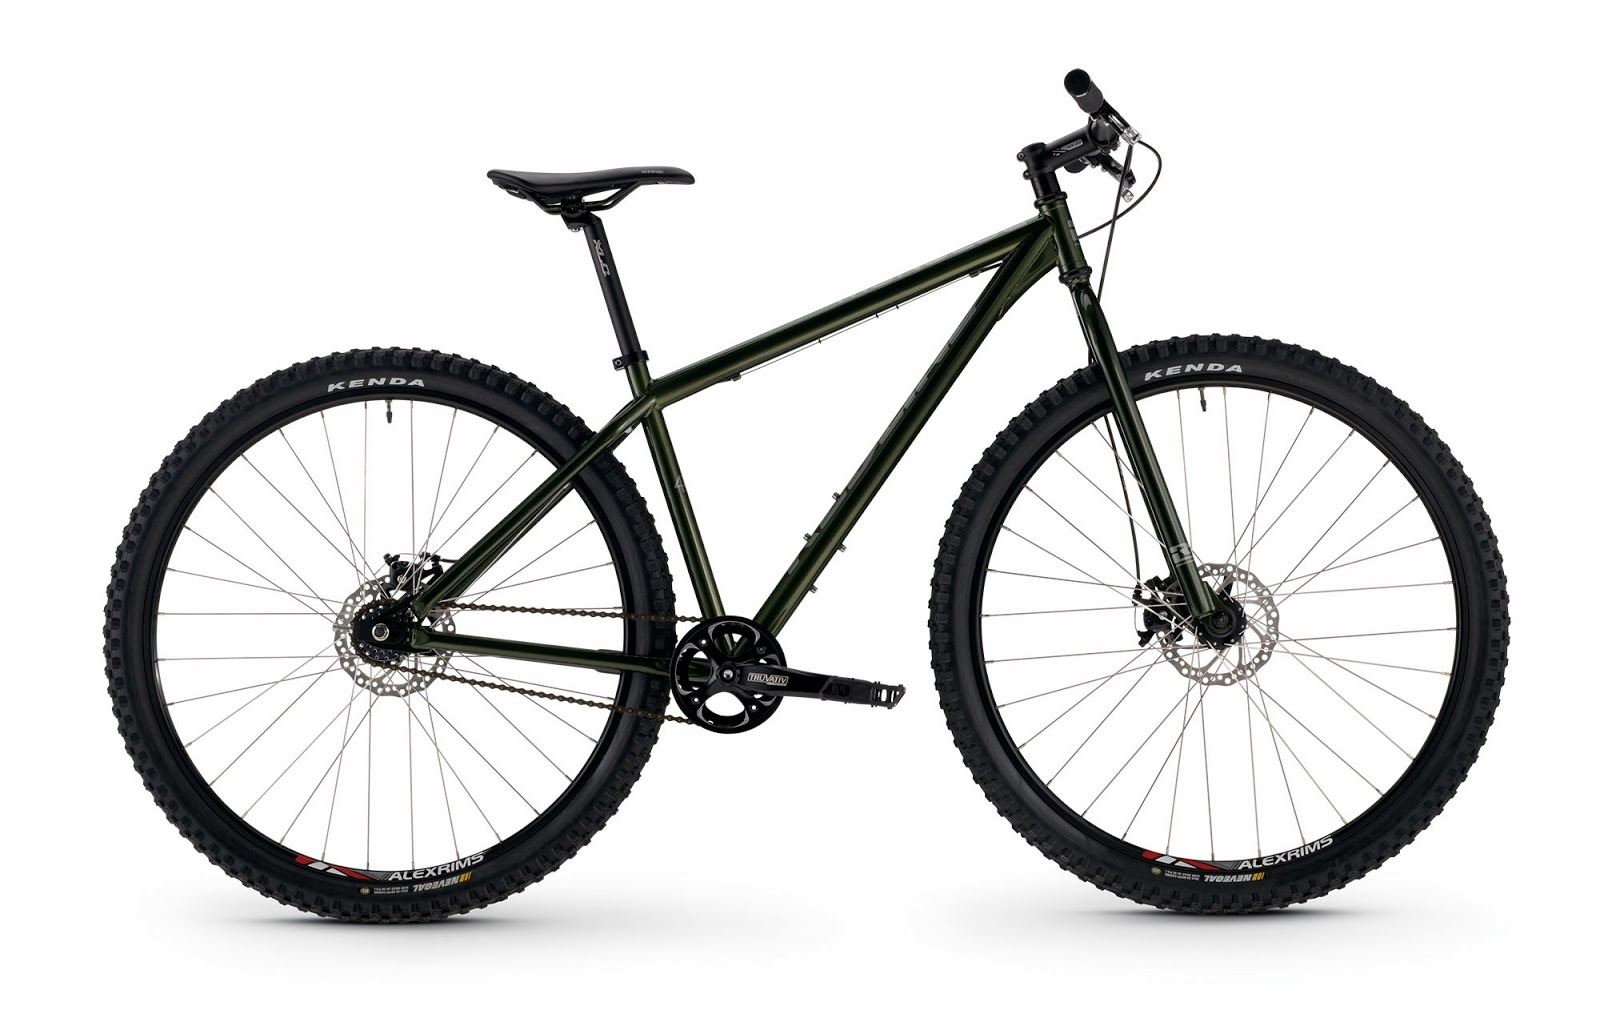 2014 Redline Monocog 29er Bike Single Speed